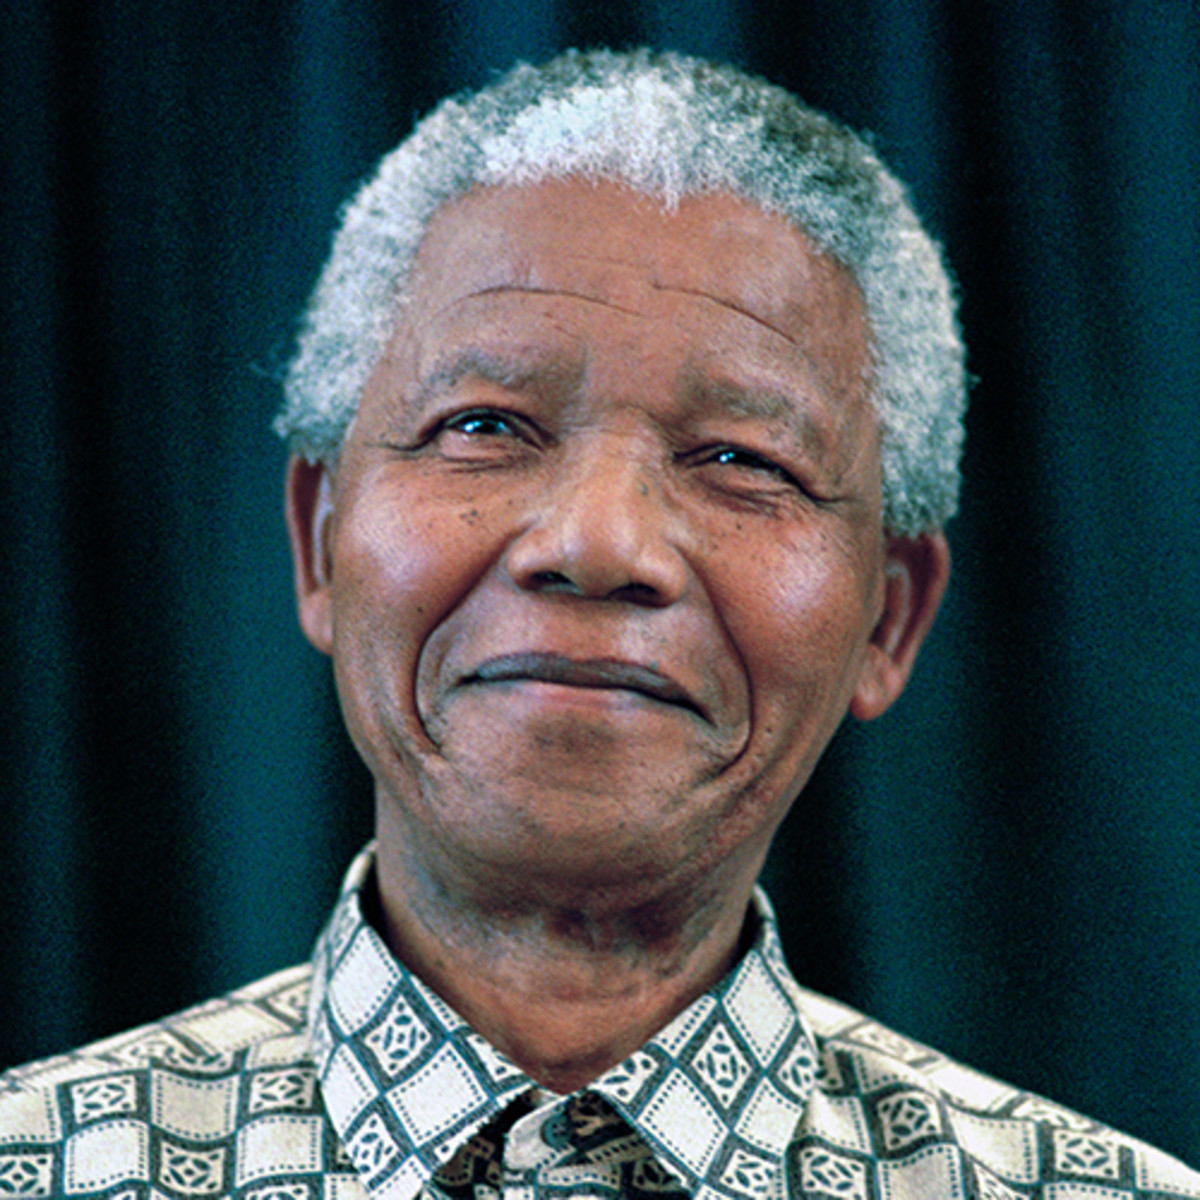 Nelson Mandela - Quotes, Spouse & Death - Biography